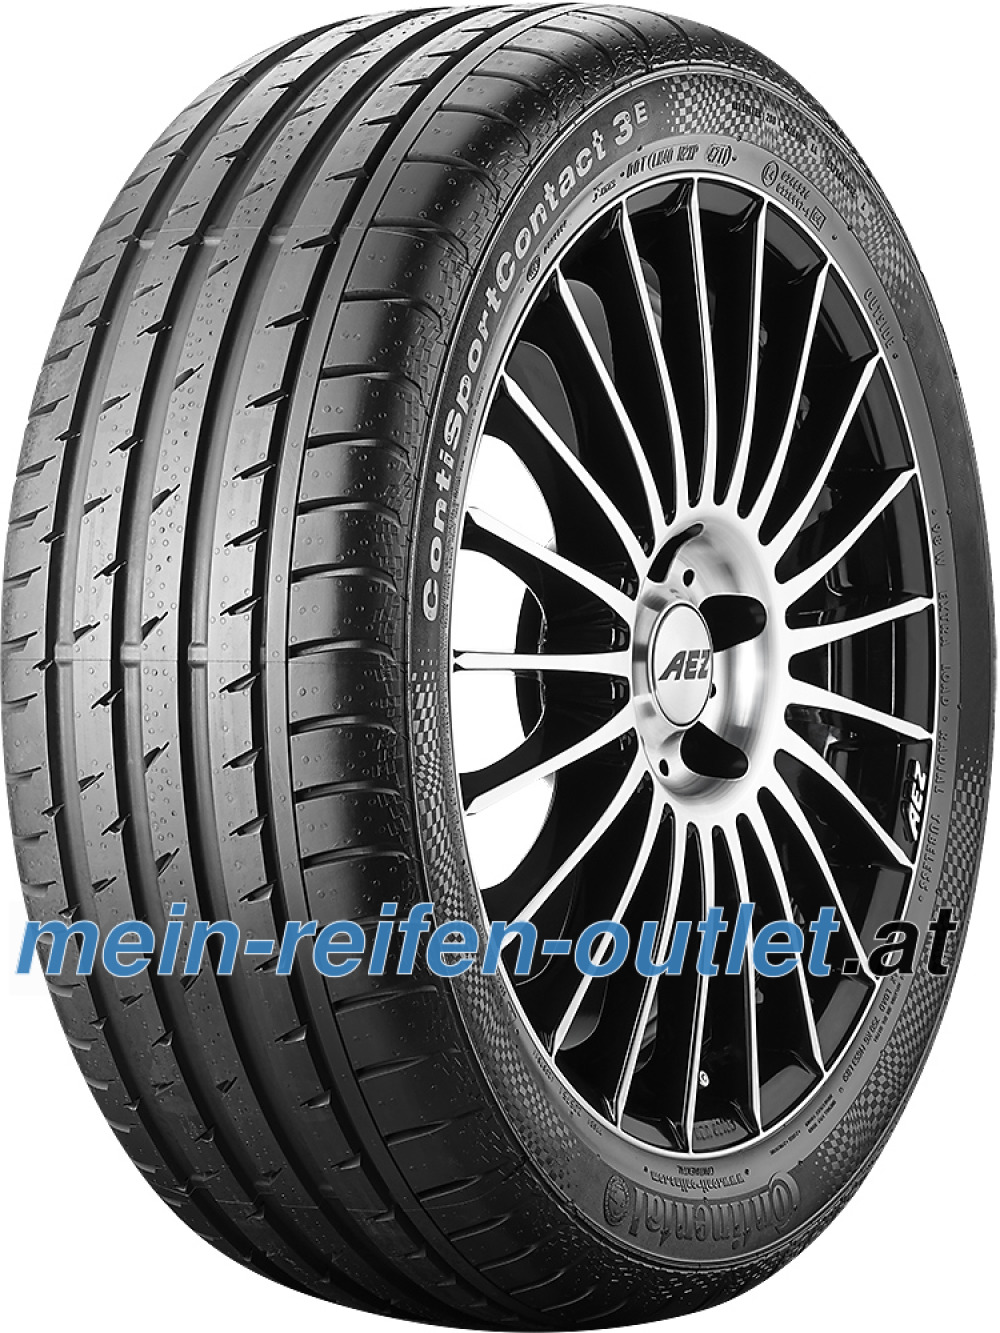 Continental ContiSportContact 3 E SSR ( 245/45 R18 96Y runflat, * )